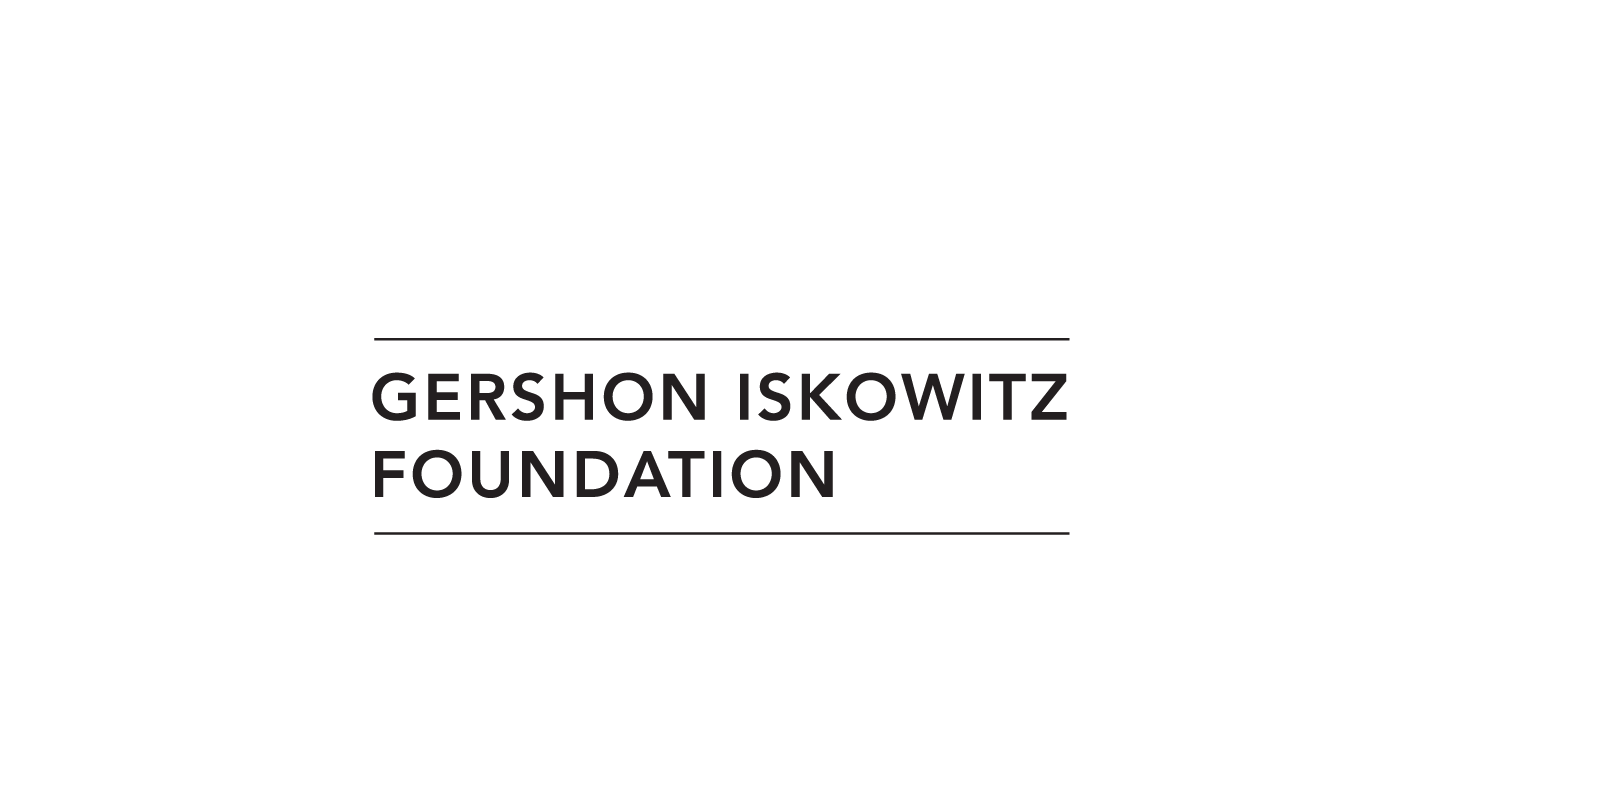 Gershon Iskowitz Foundation